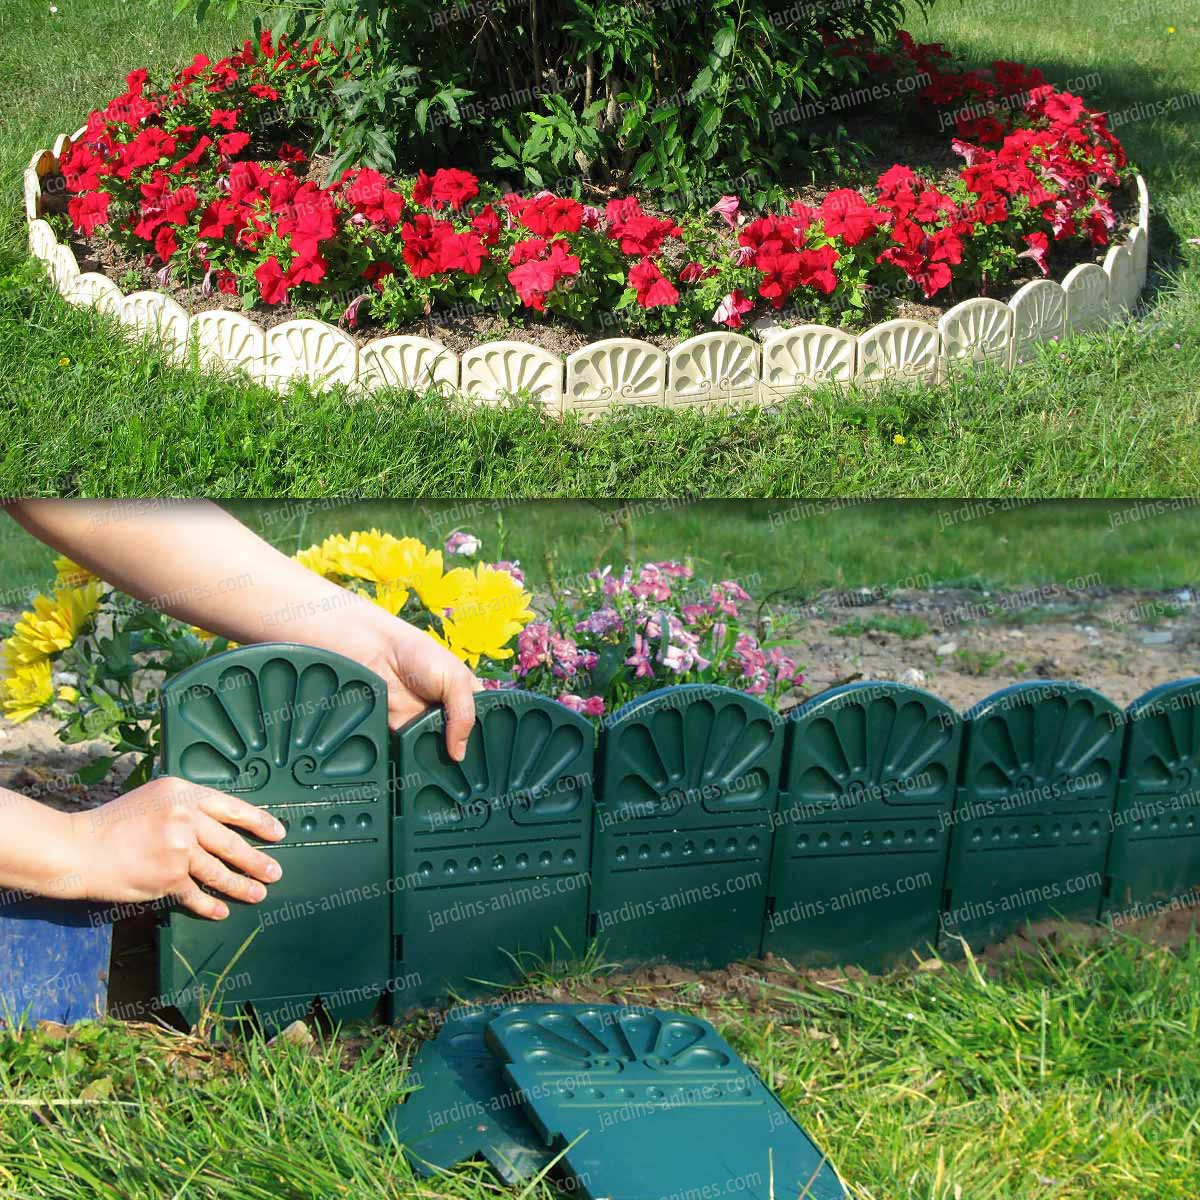 Bordures d coratives de jardin en plastique bordurette gazon - Bordure plastique de jardin ...